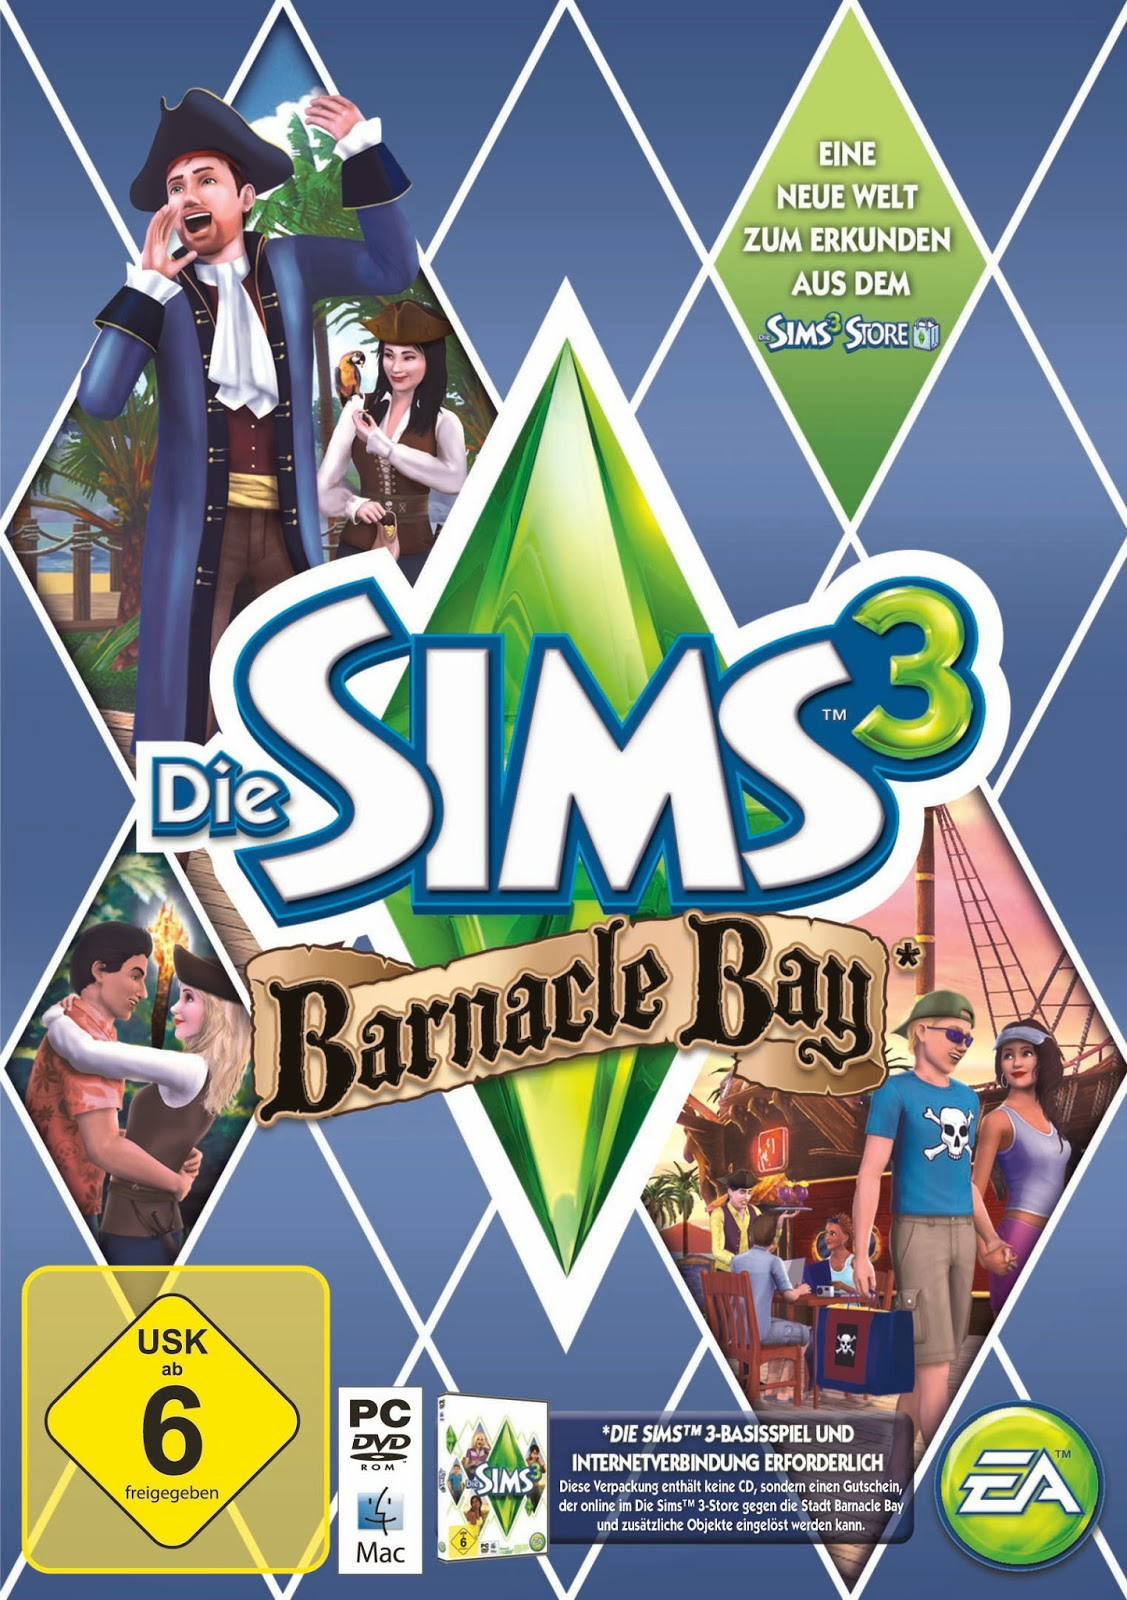 http://www.amazon.de/Die-Sims-Download-Code-Datentr%C3%A4ger-enthalten/dp/B004P1IWU0/ref=sr_1_2?ie=UTF8&qid=1406035627&sr=8-2&keywords=Die+Sims+3+-+Barnacle+Bay